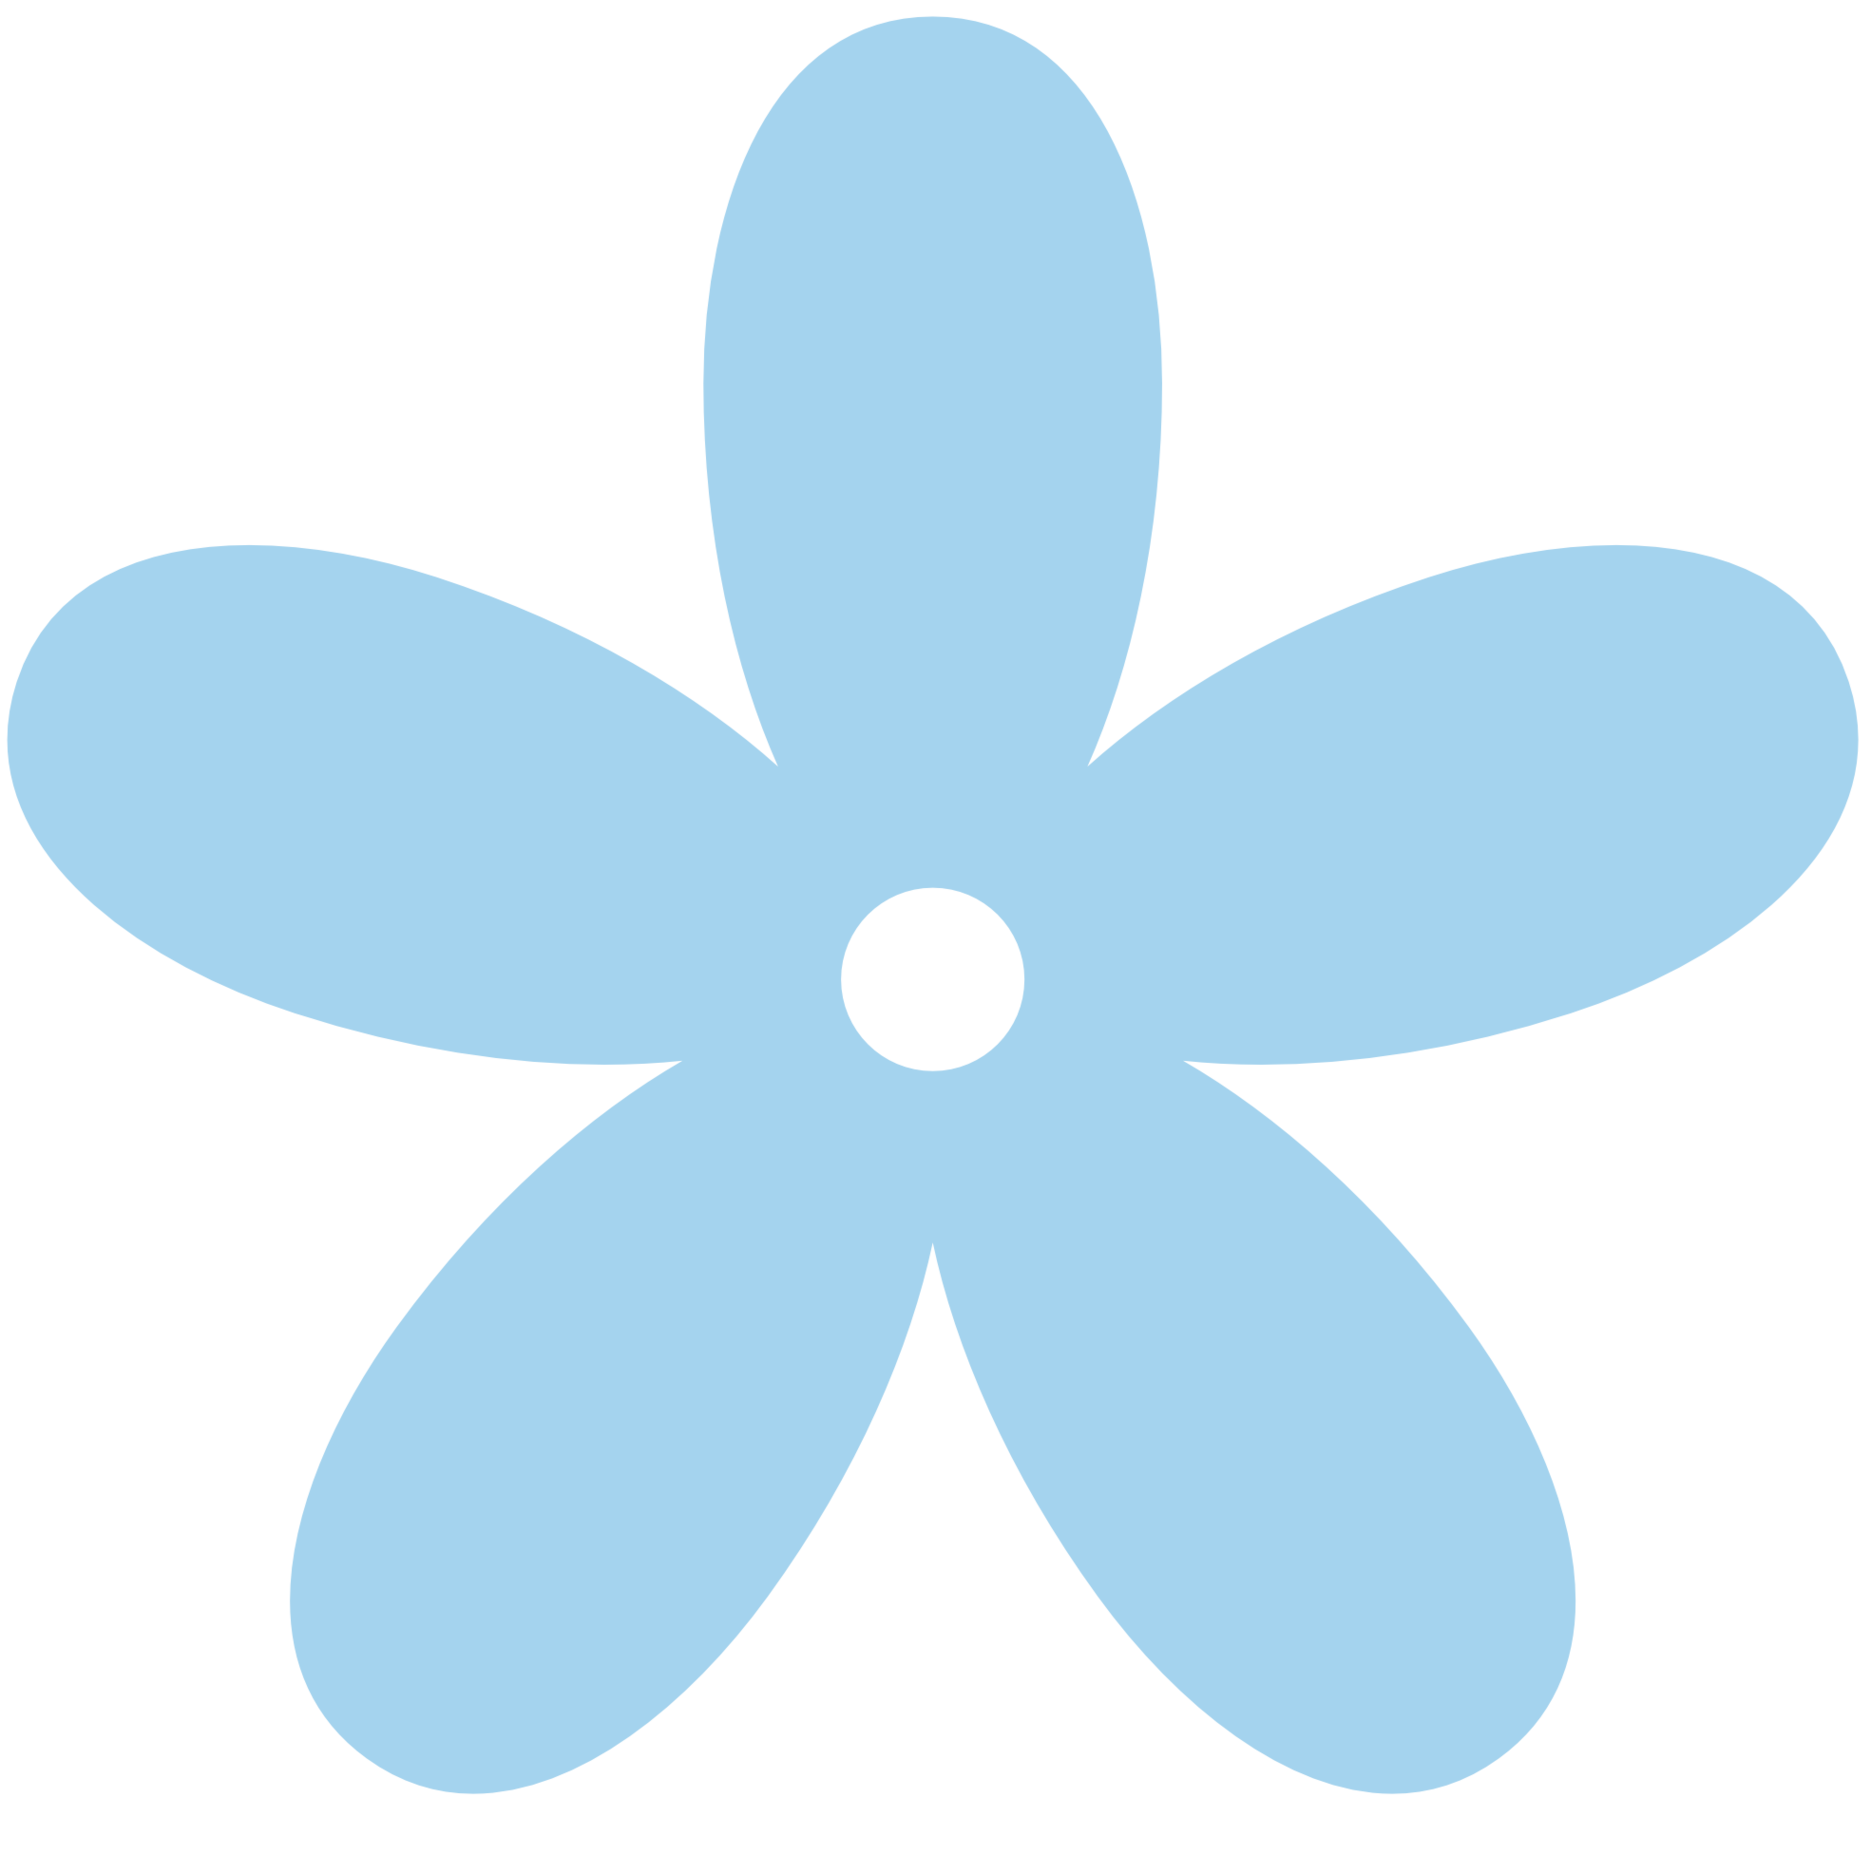 Light colored clipart svg library download Blue colored flower clipart images gallery for free download ... svg library download